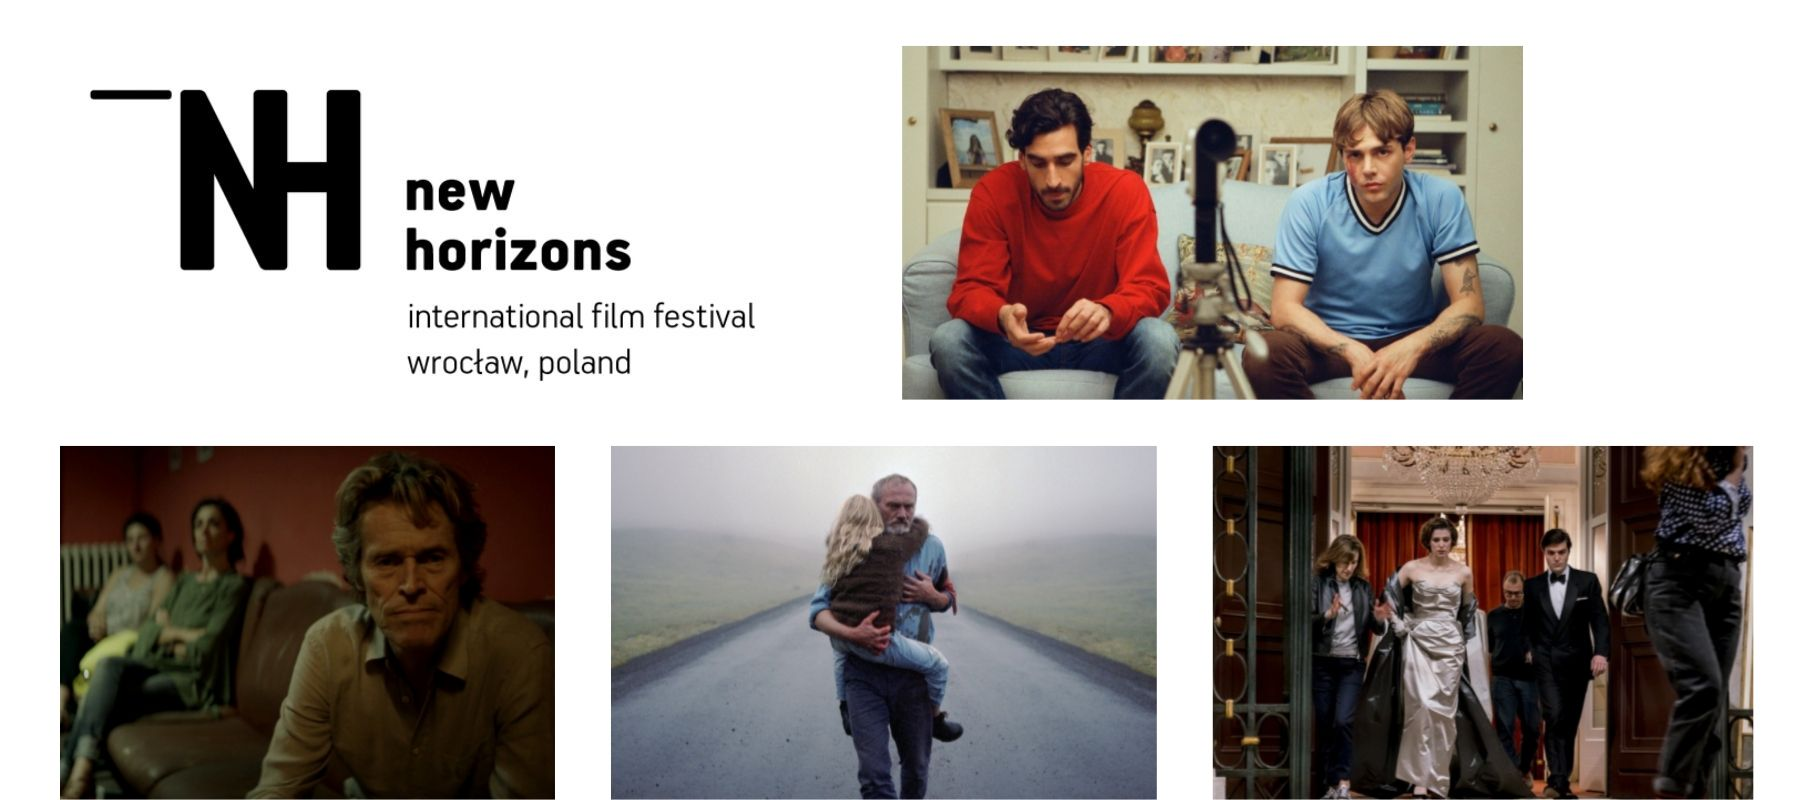 header for reviews of new horizons film festival in Poland